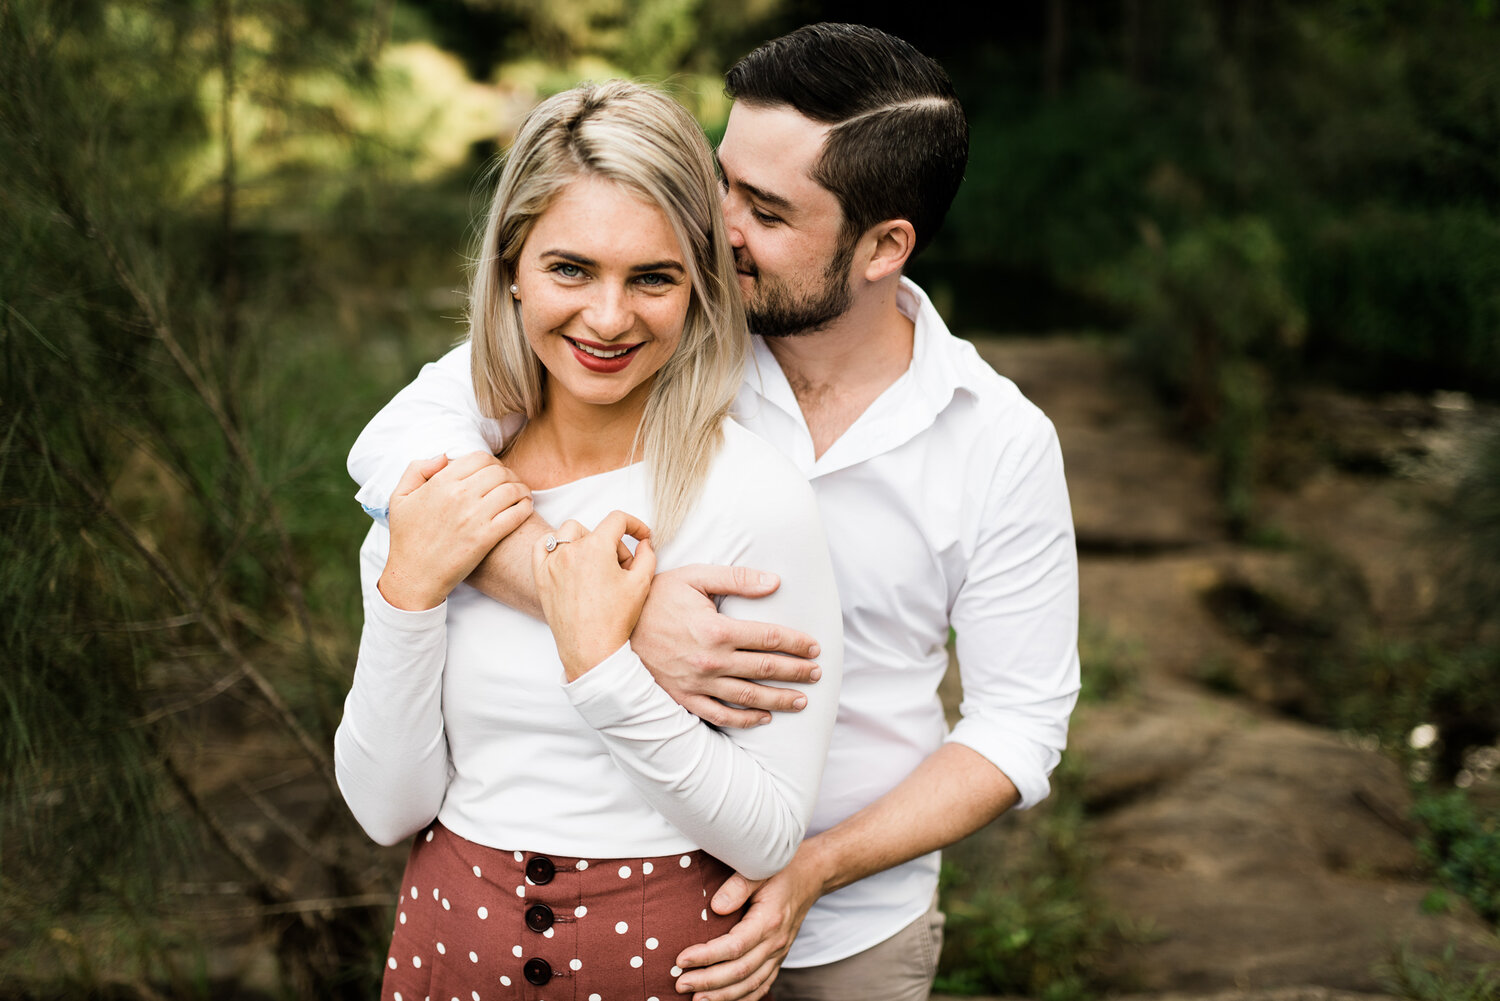 Bonnie and Tom, nailing the style vibe during their engagement session at Bunya Riverside Crossing in Brisbane.